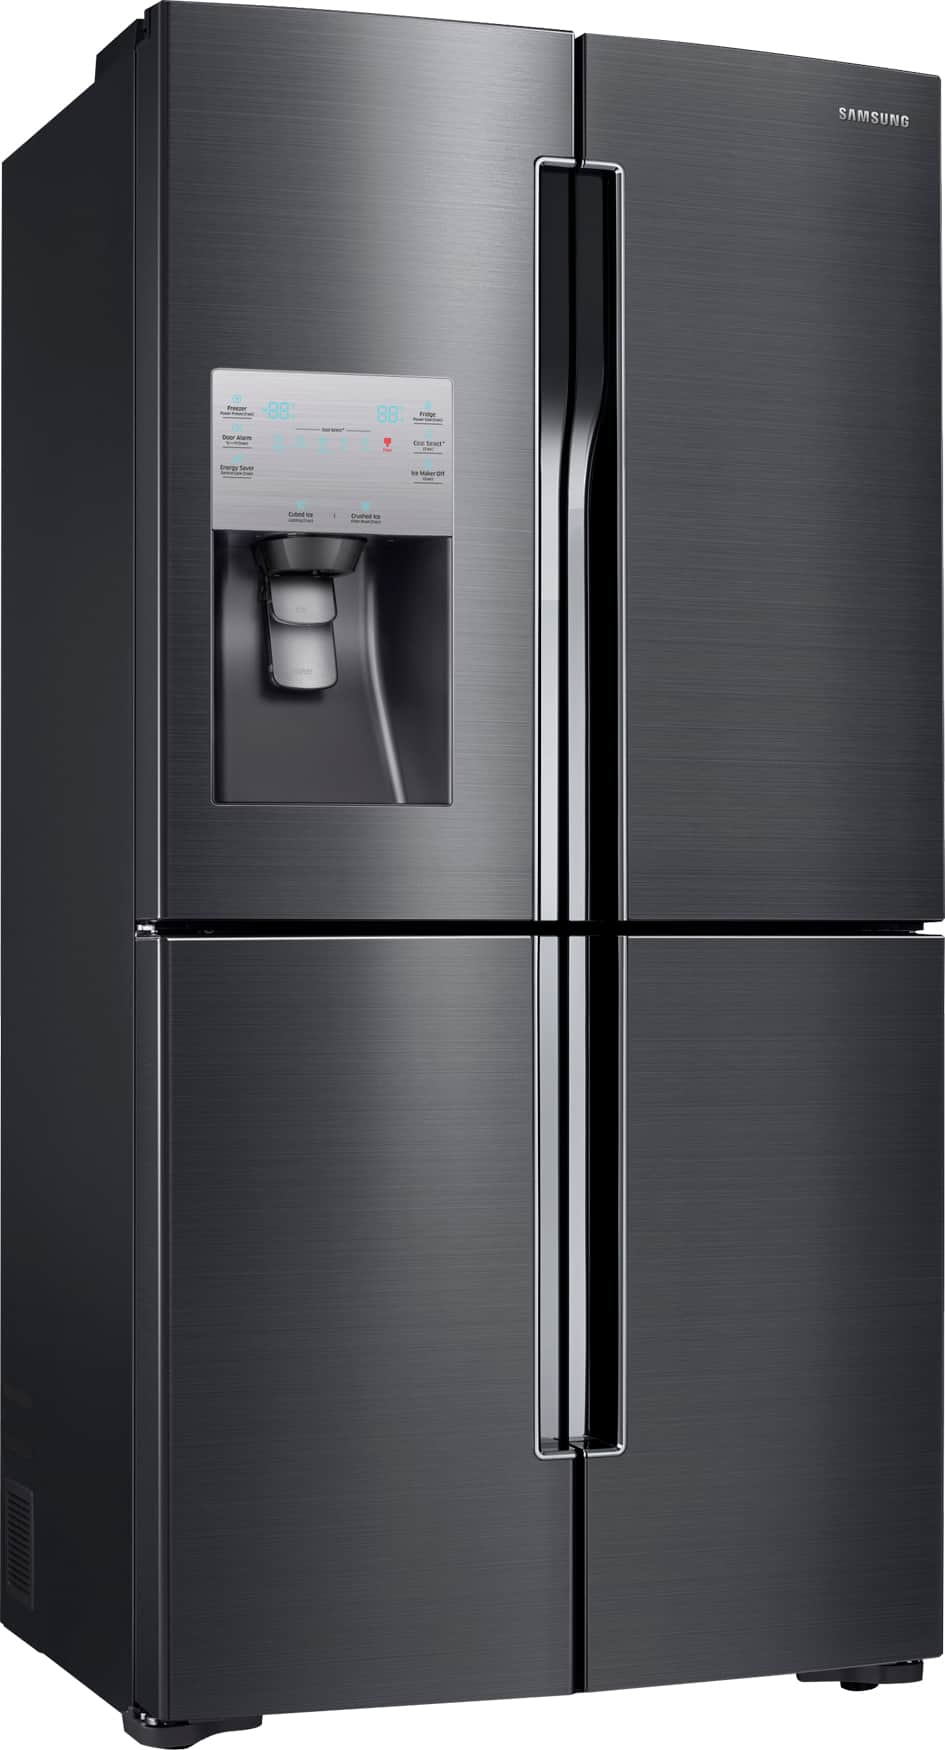 Samsung Appliances Open House Bestbuy Herestohome This